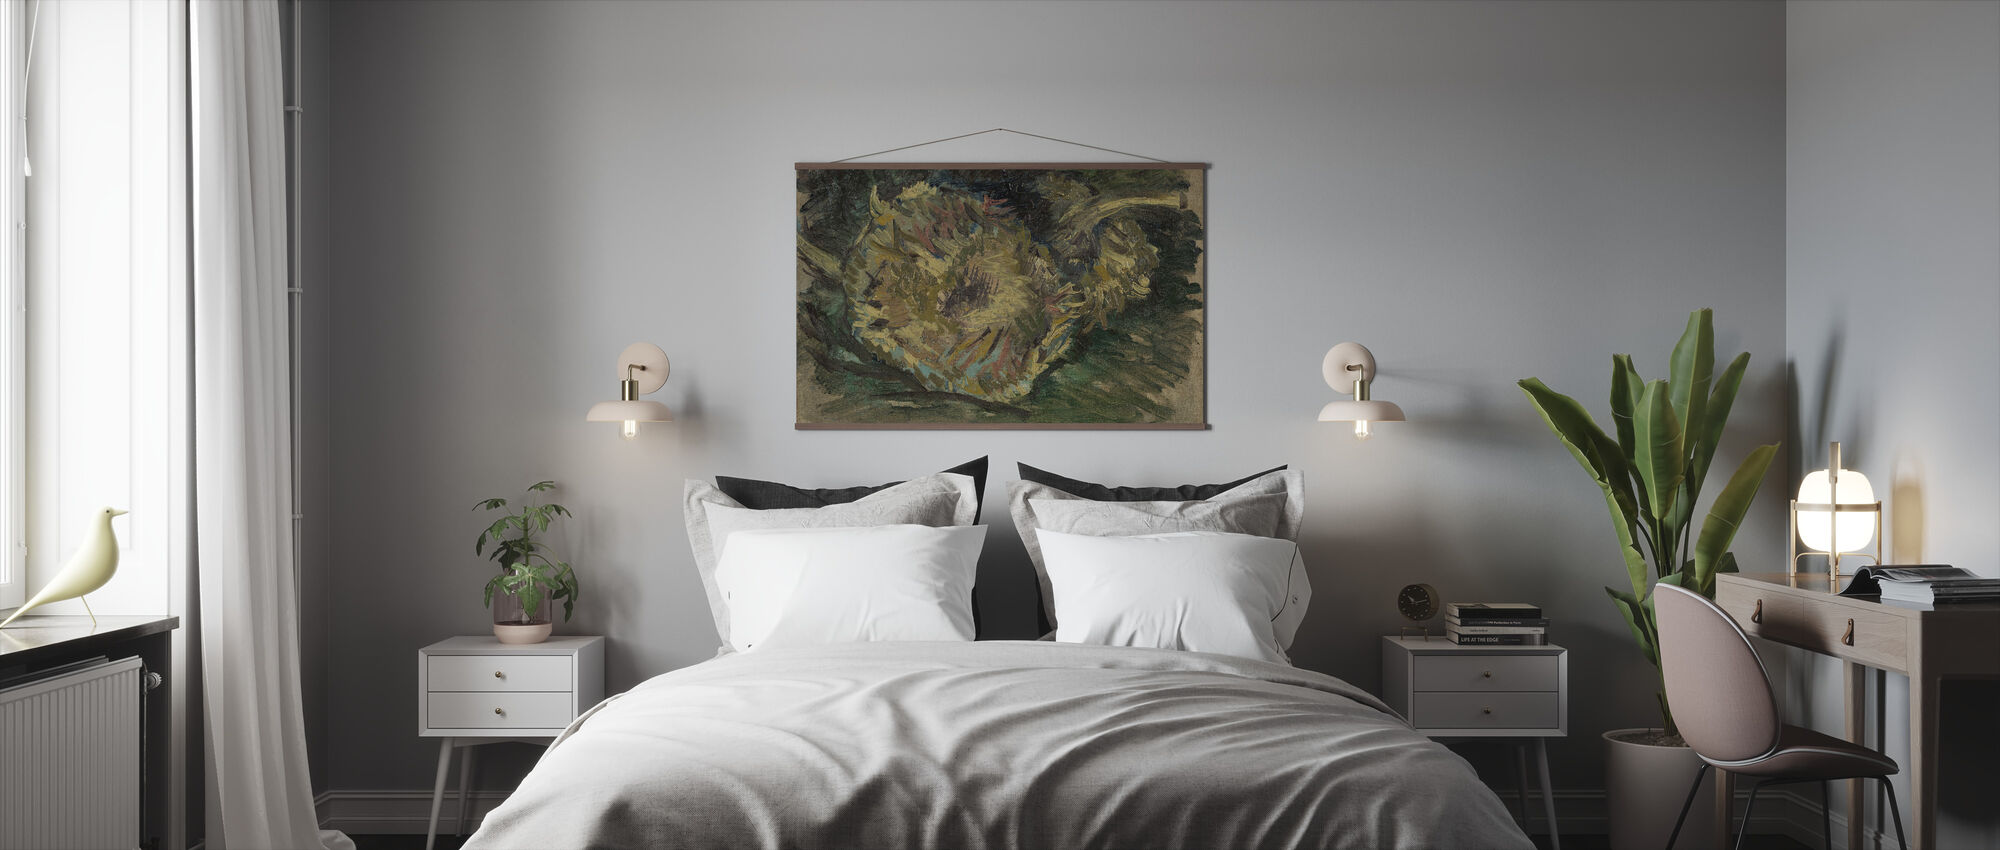 Two Cut Sunflowers - Vincent Van Gogh - Poster - Bedroom